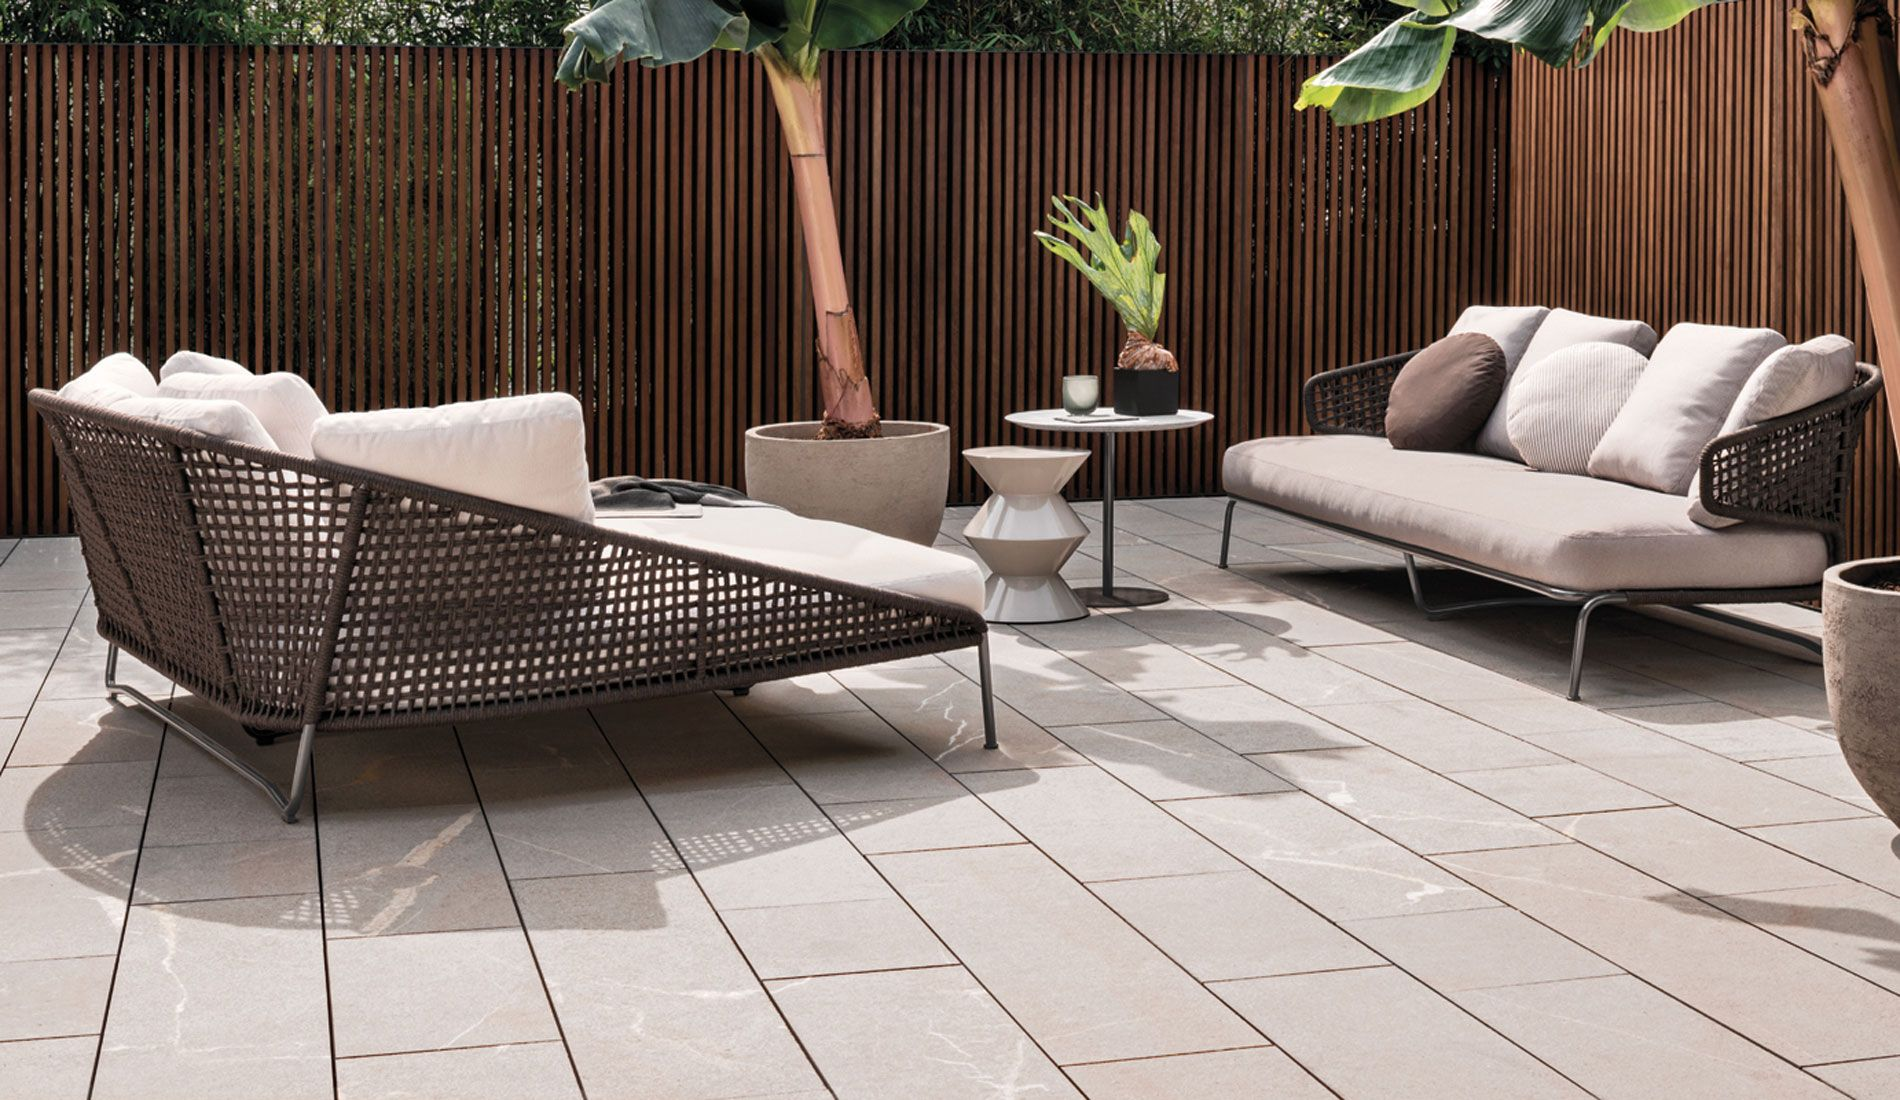 Minotti Aston Cord Outdoor Loveseat Lounge Outdoor